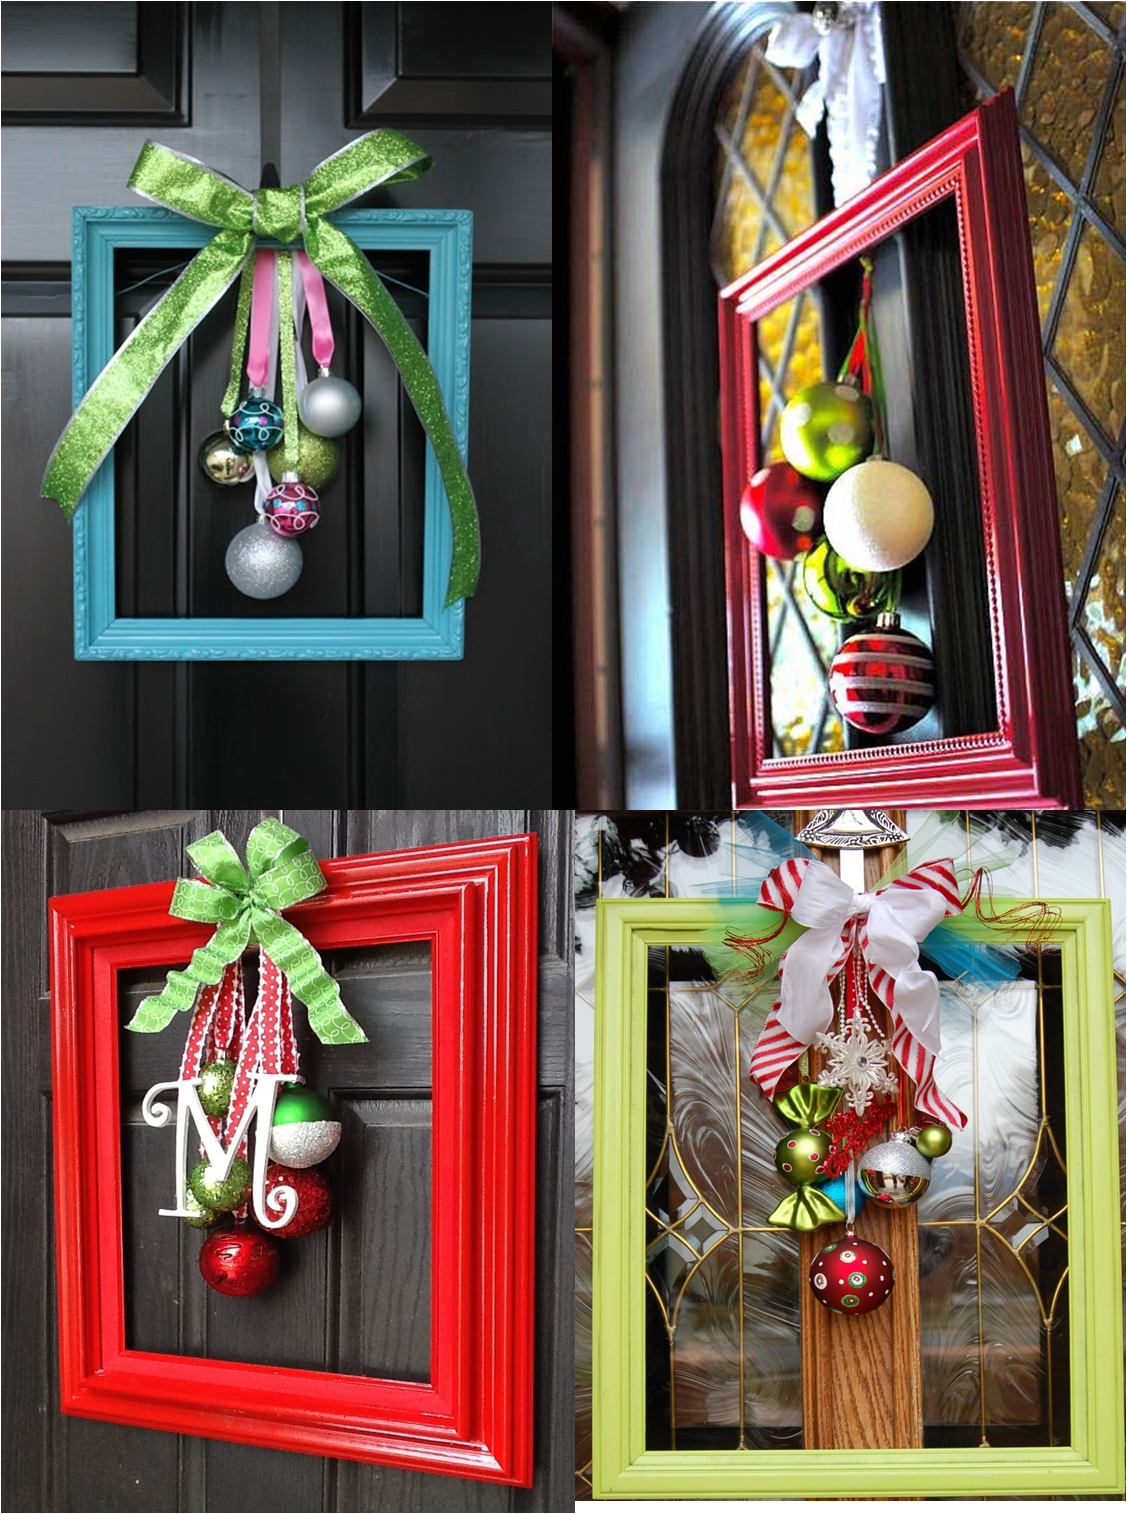 Wooden outdoor christmas decorations - Elegant And Unusual Door Decorations Made From Picture Frames Ribbons And Baubles